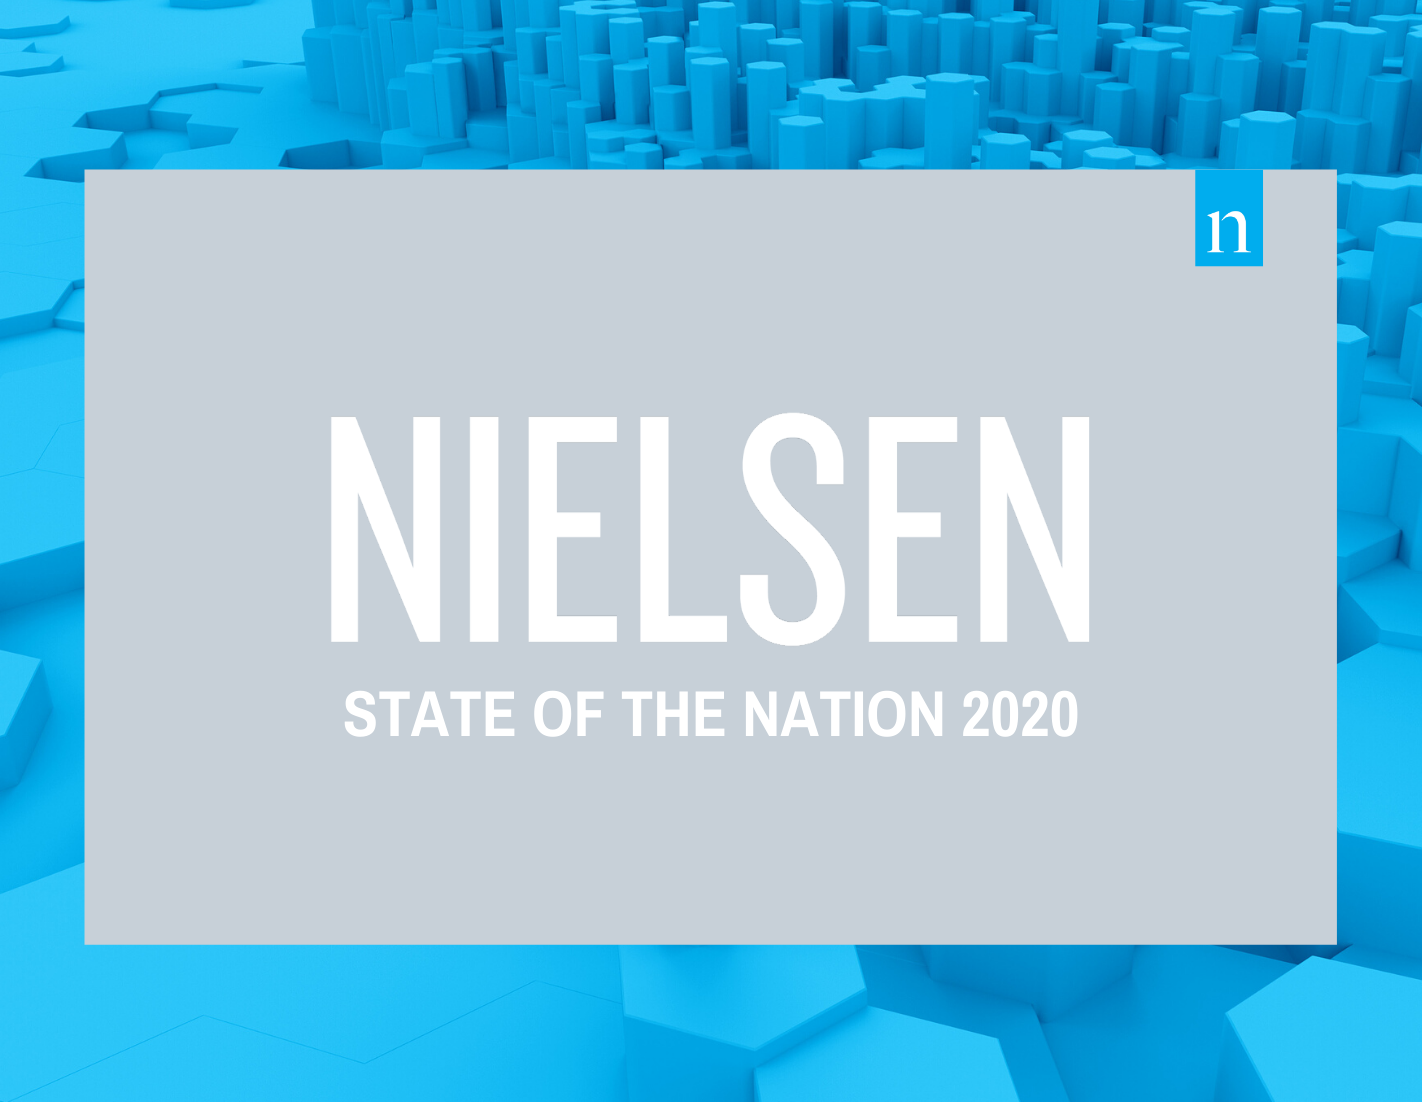 State of the nation 2020 thumbnail